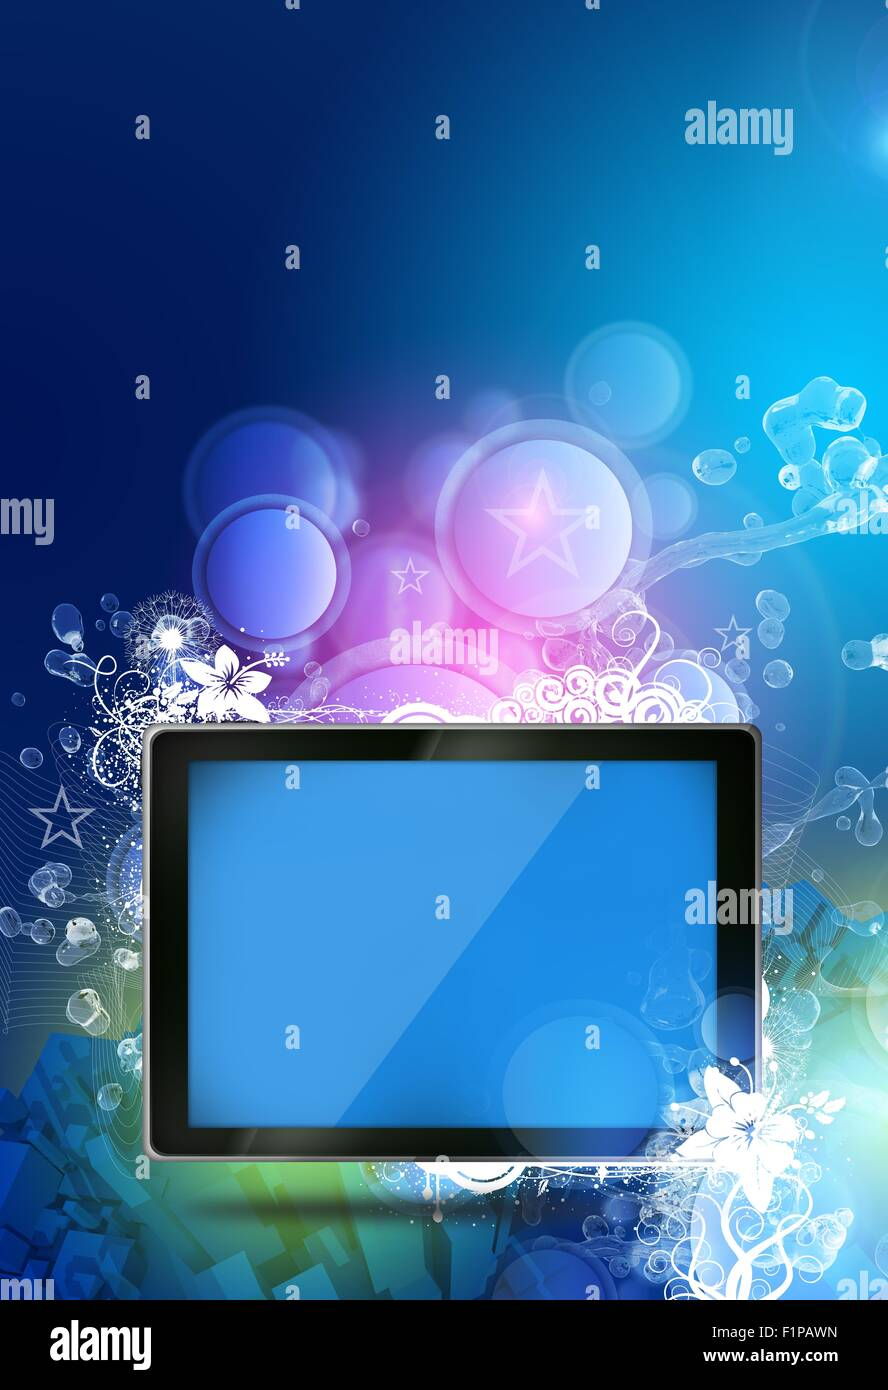 Pinky star stock photos pinky star stock images alamy - Fantasy wallpaper tablets ...